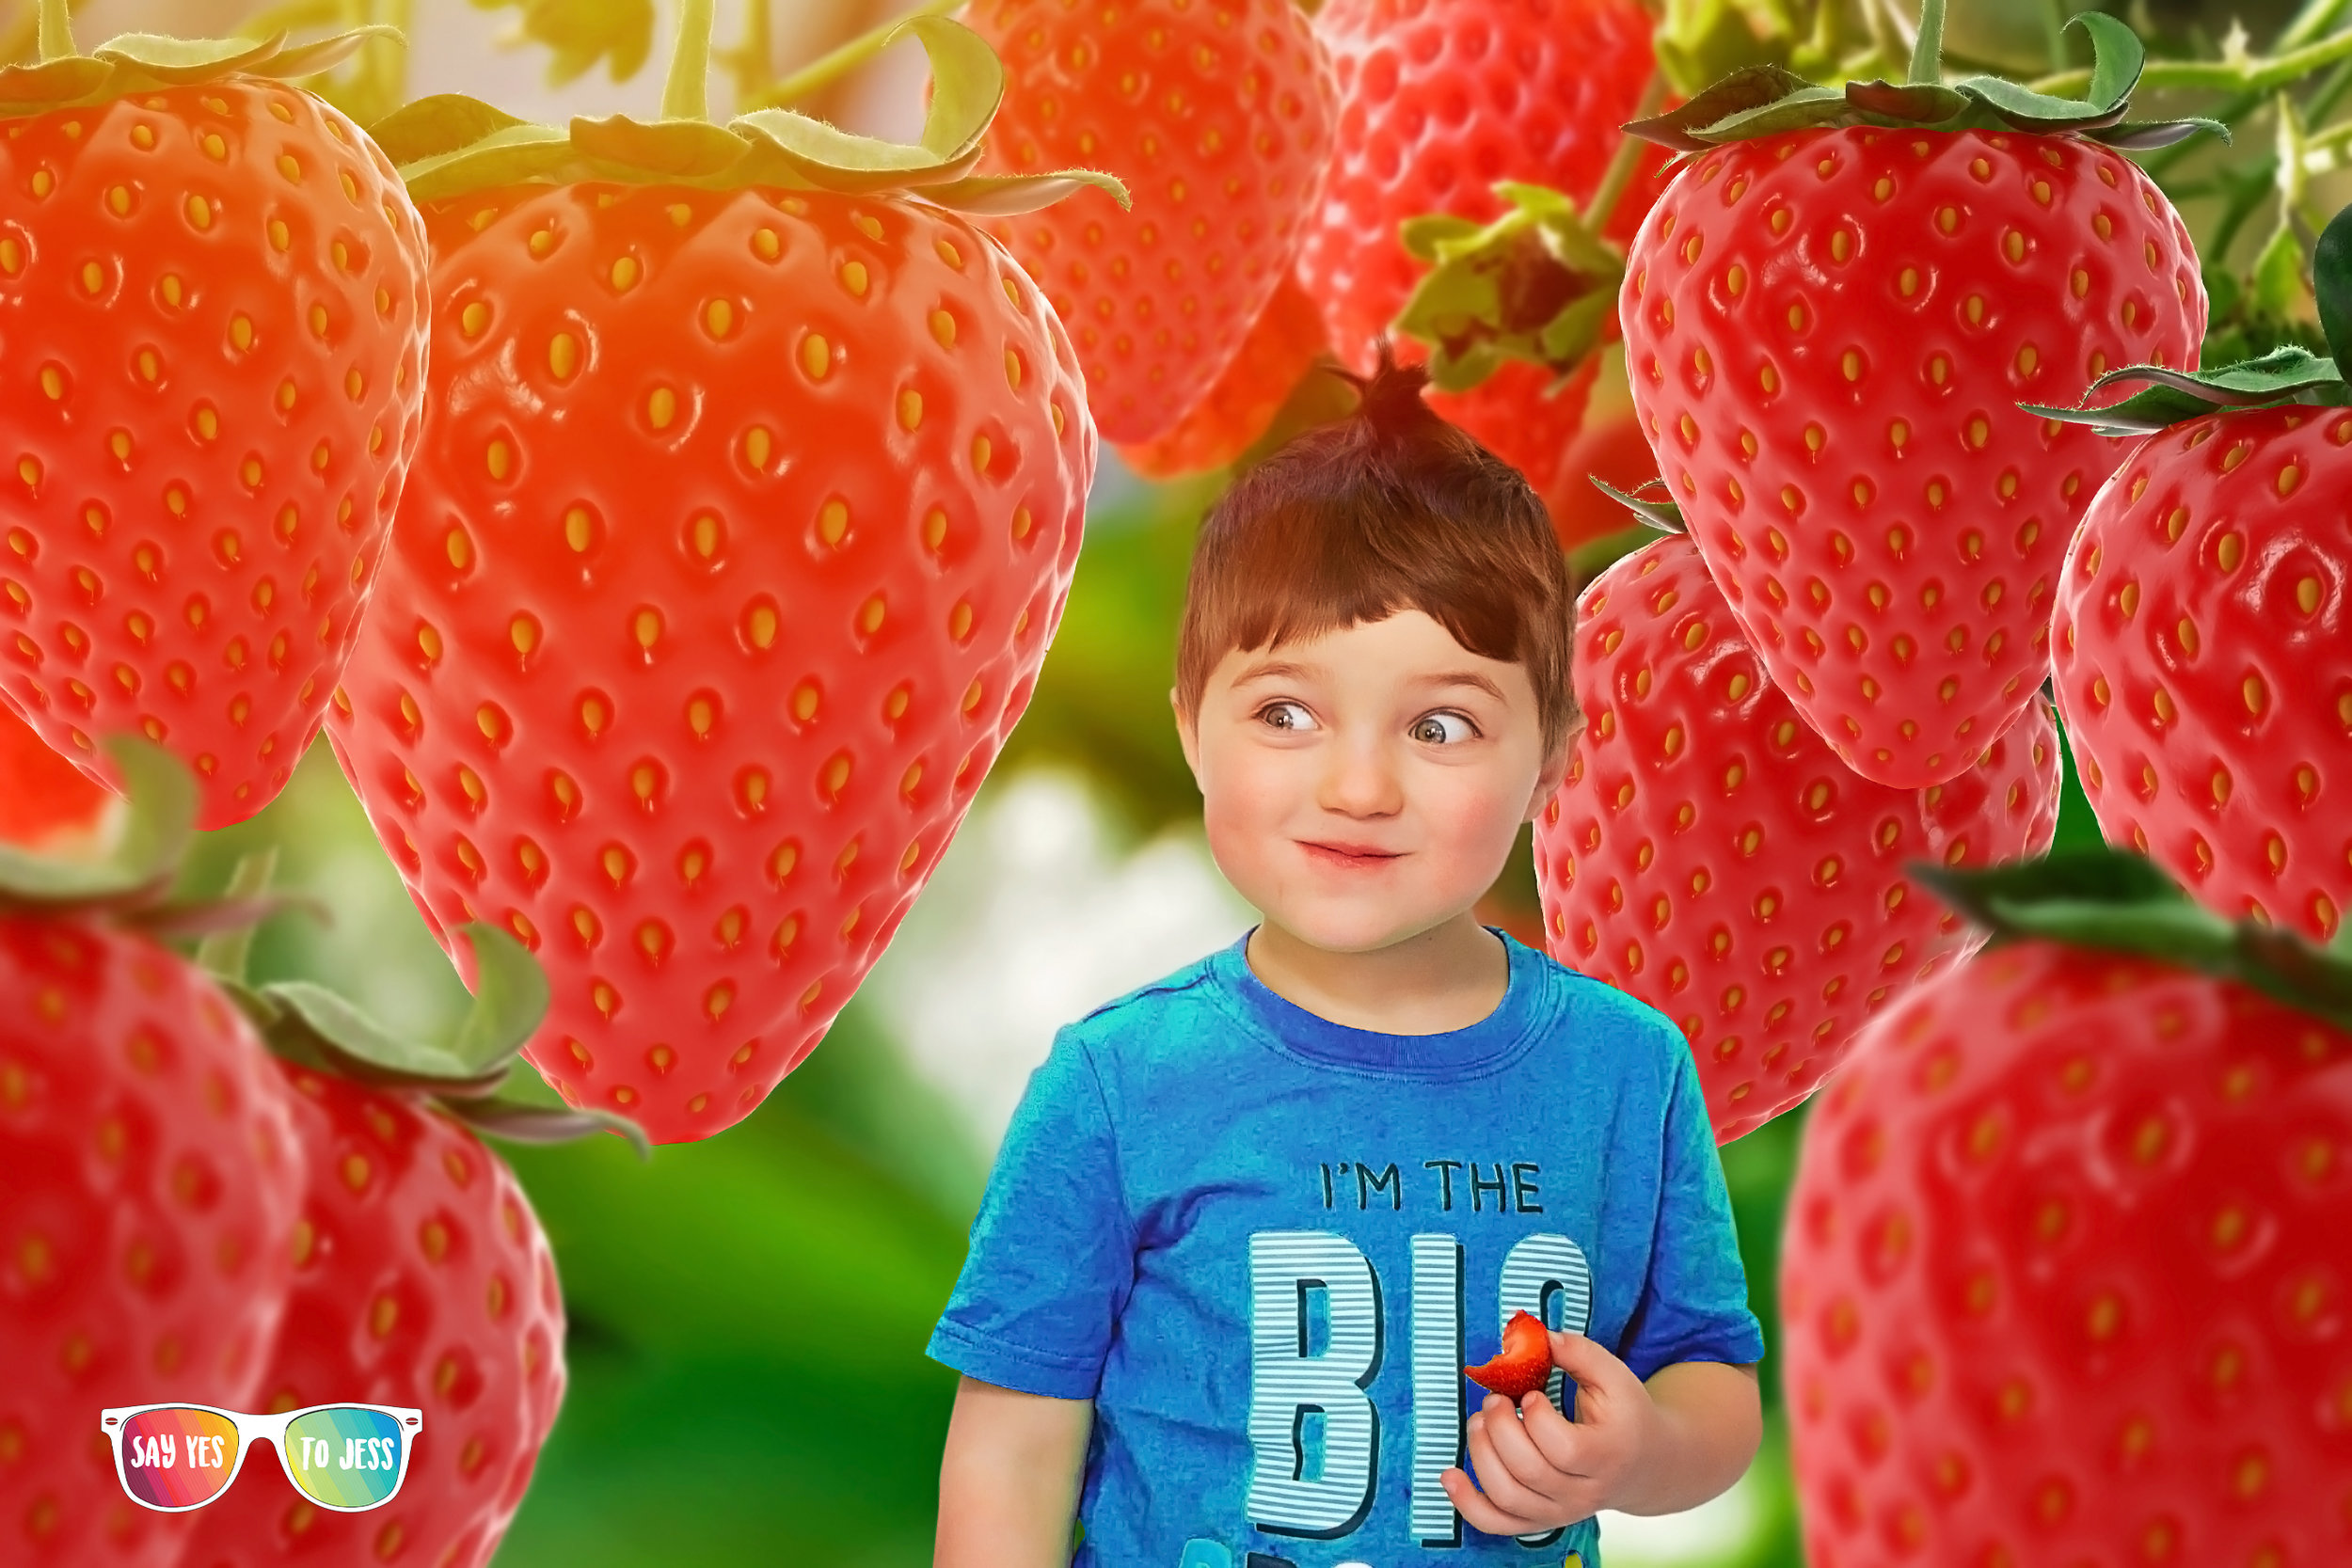 Small Child finds joy by walking through giant strawberry field in a Say Yes to Jess Child Photographer Dream Session!